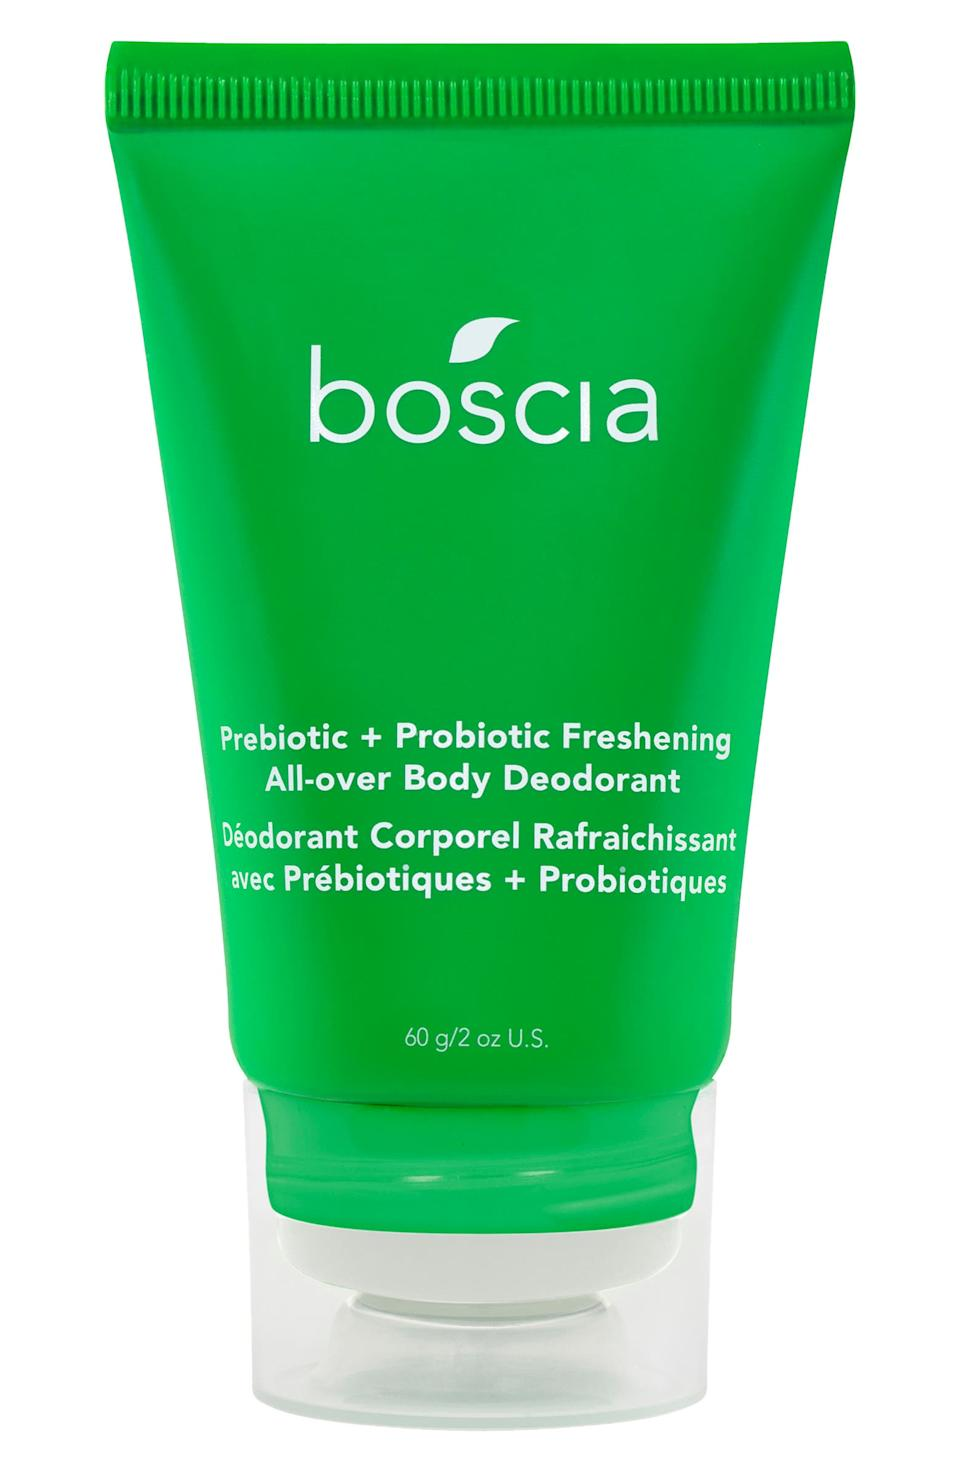 The blend of prebiotics and probiotics inside the Freshening All-Over Body Deodorant by Boscia not only helps to prevent odor-causing bacteria that grows on sweat, it helps to reinforce a healthy biome.